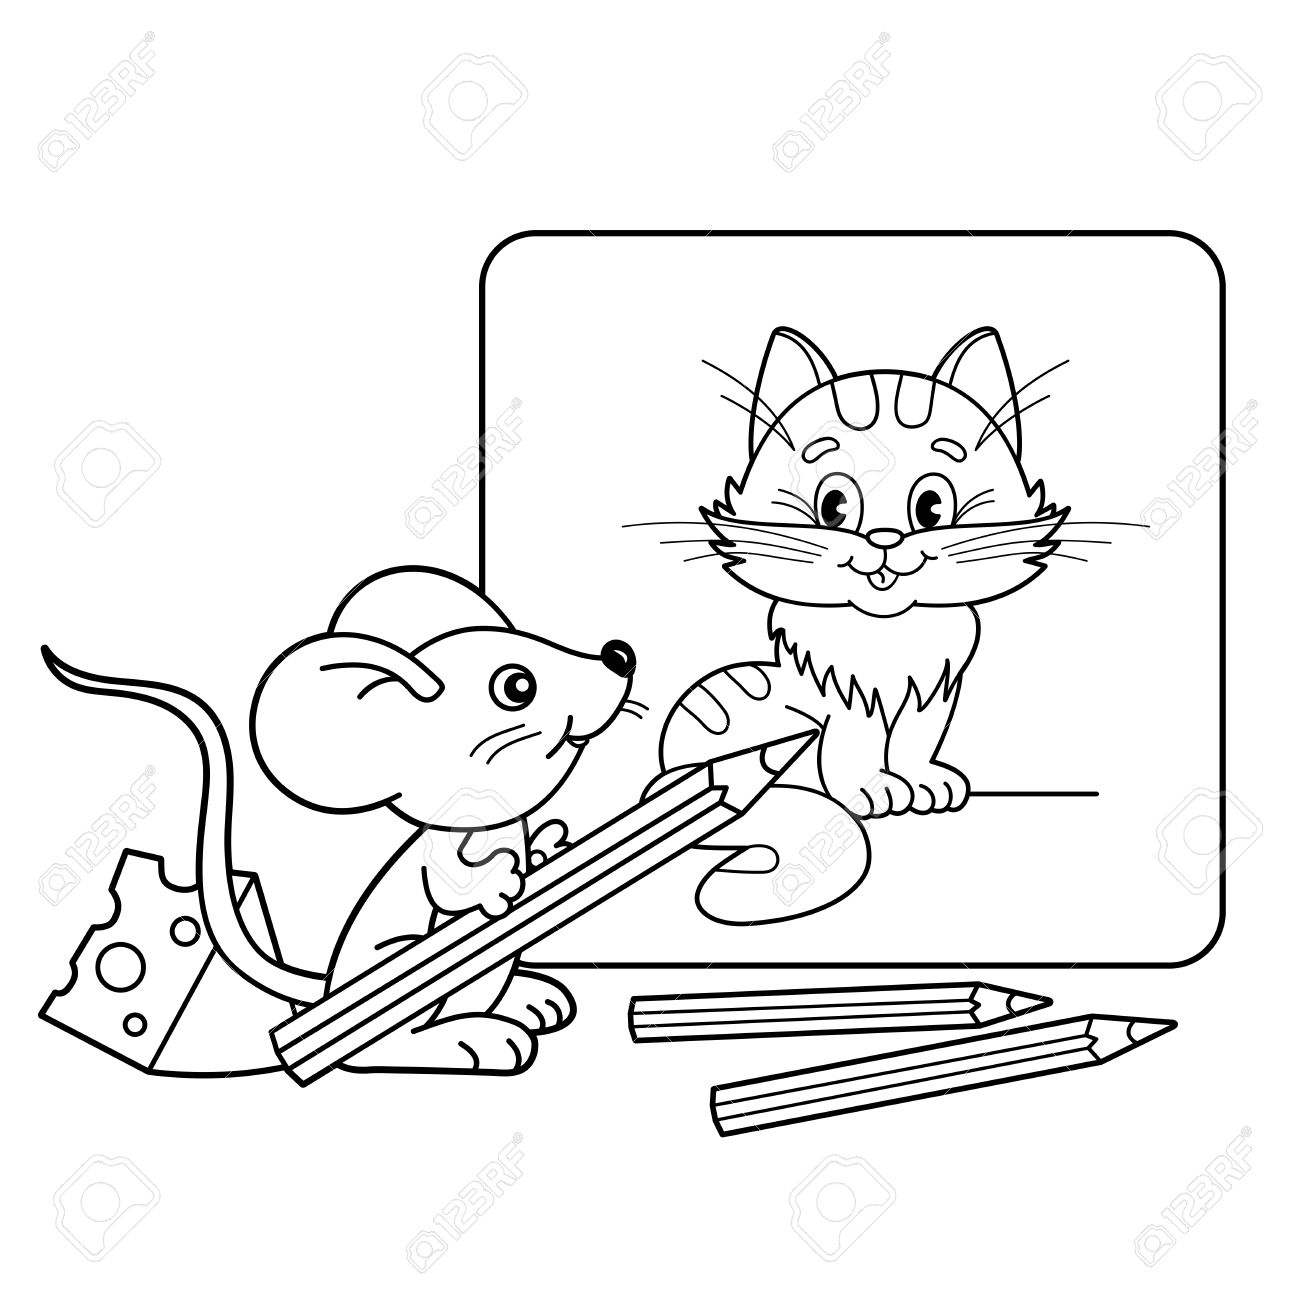 Coloring Page Outline Of Cartoon Little Mouse With Pencils Picture Cat Book